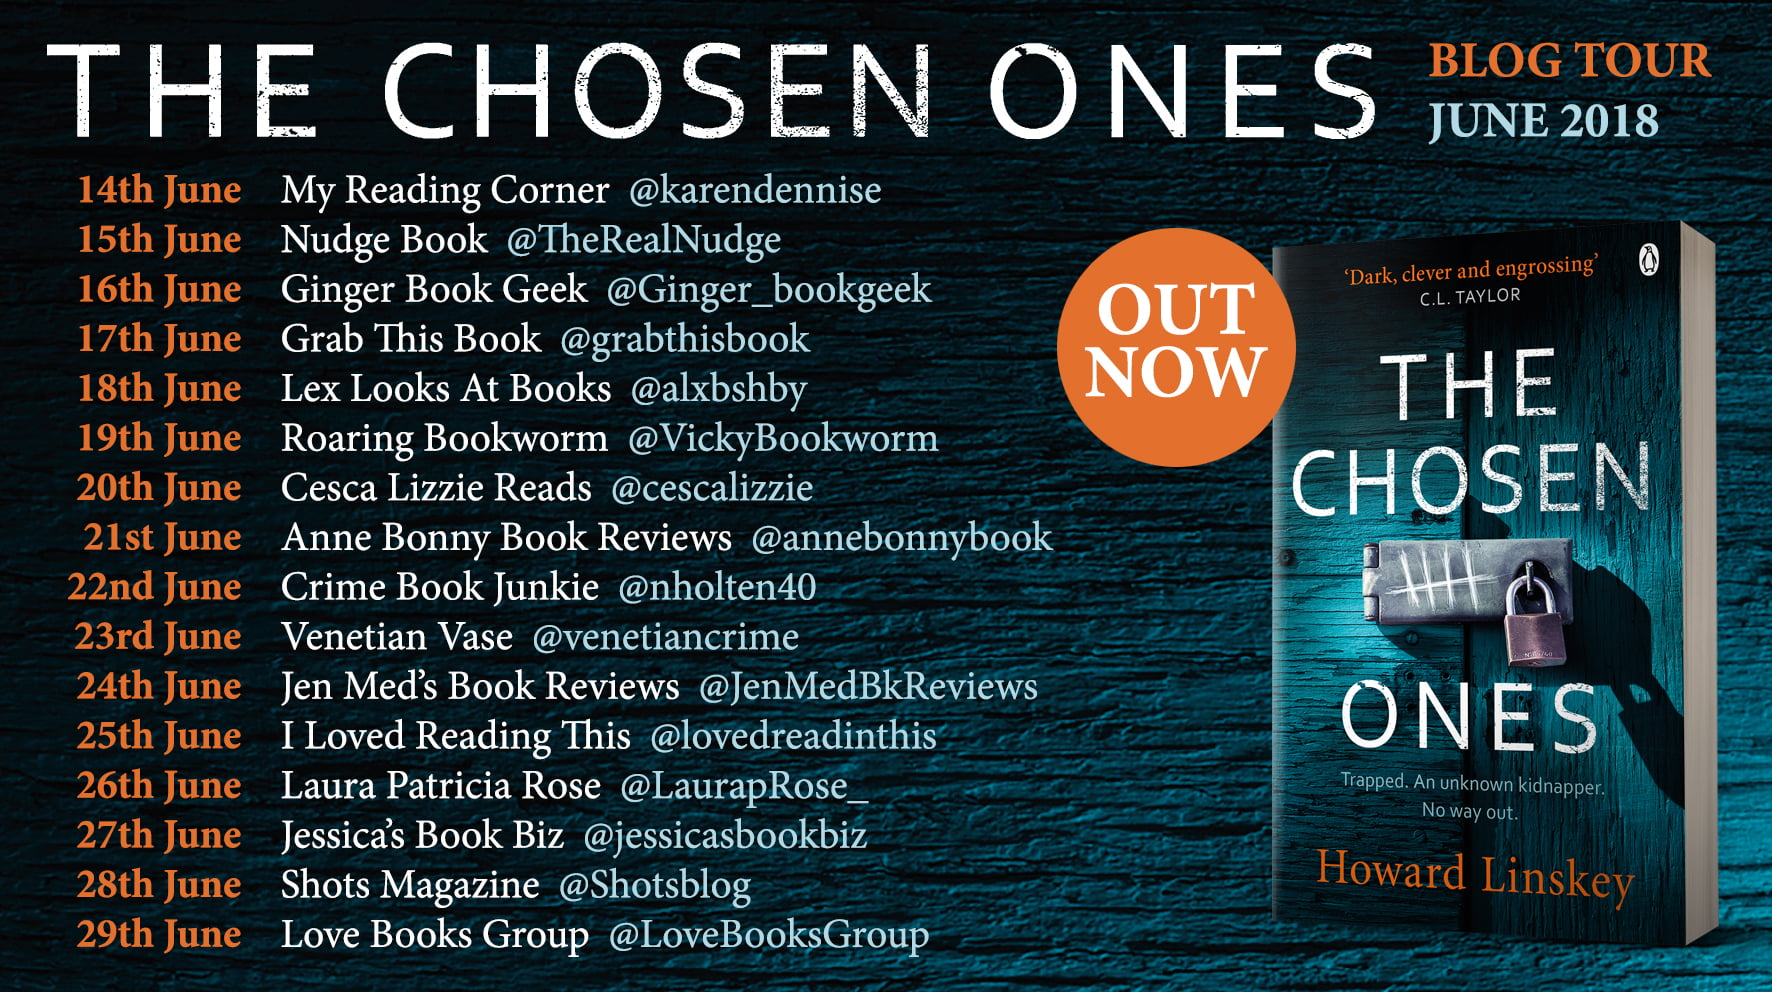 THE CHOSEN ONES – HOWARD LINSKEY